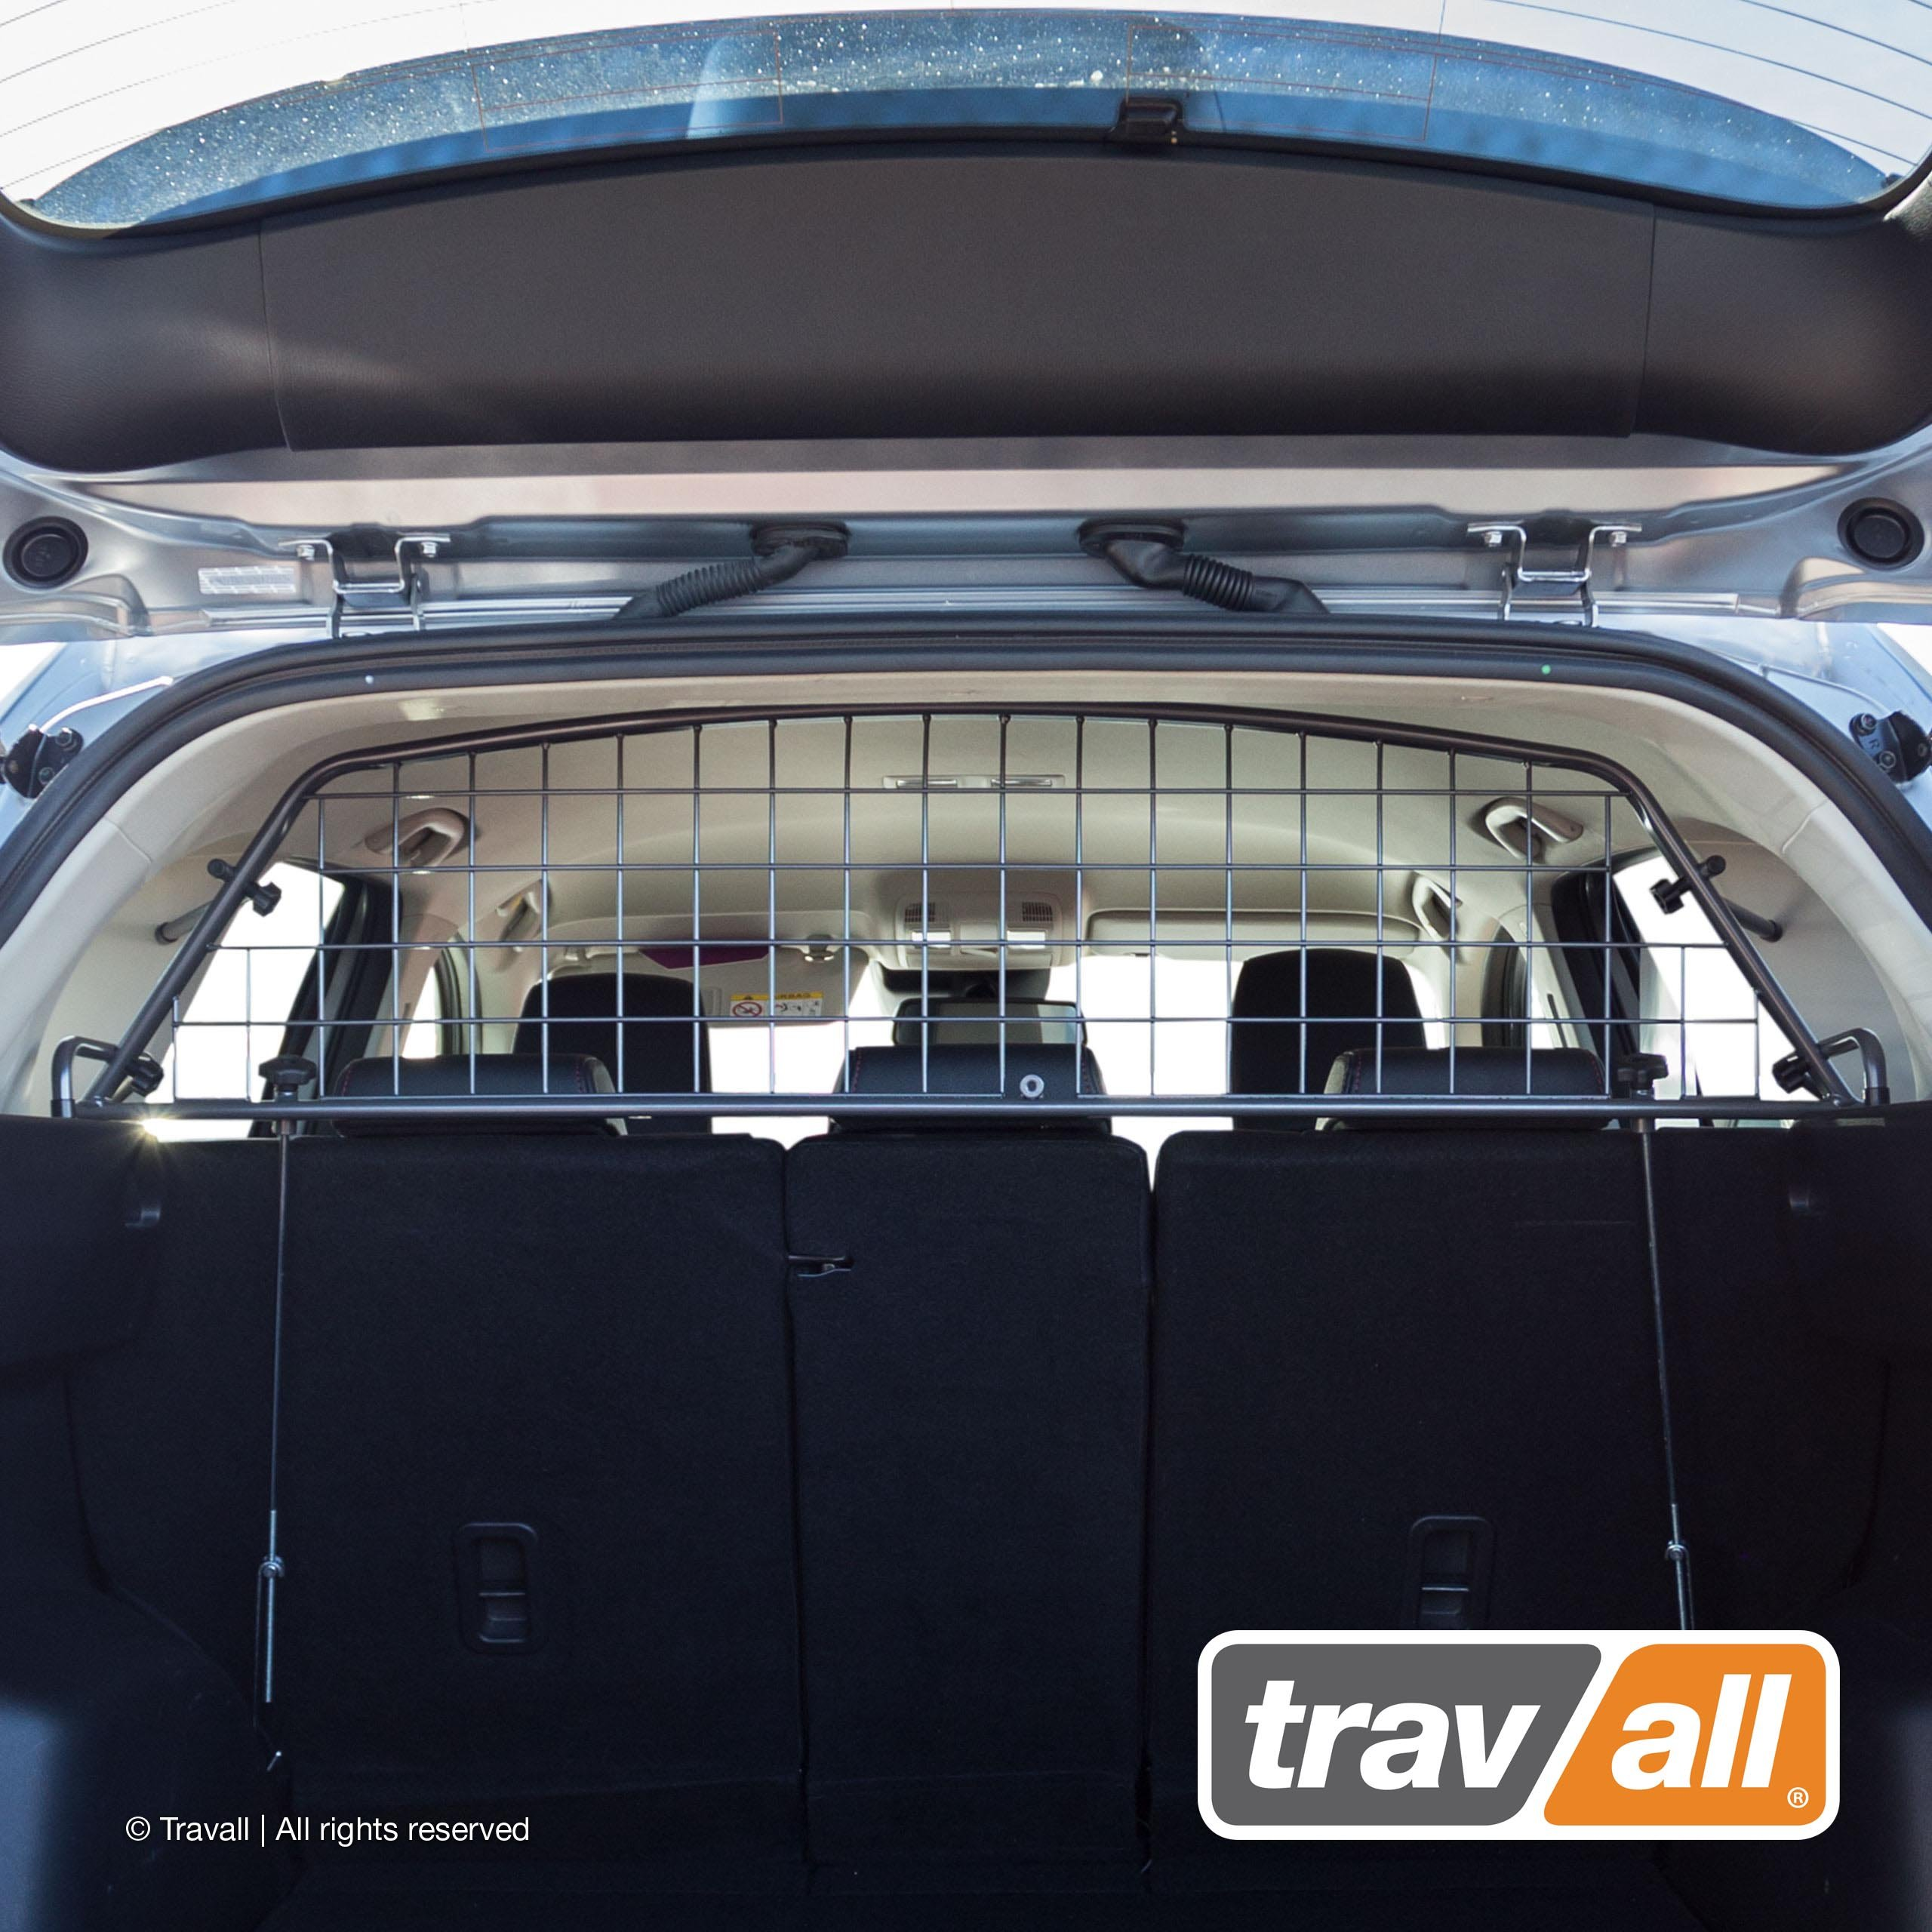 Travall Guard Compatible with Mazda CX-5 (2012-2017) TDG1343 - Rattle-Free Luggage and Pet Barrier by Travall